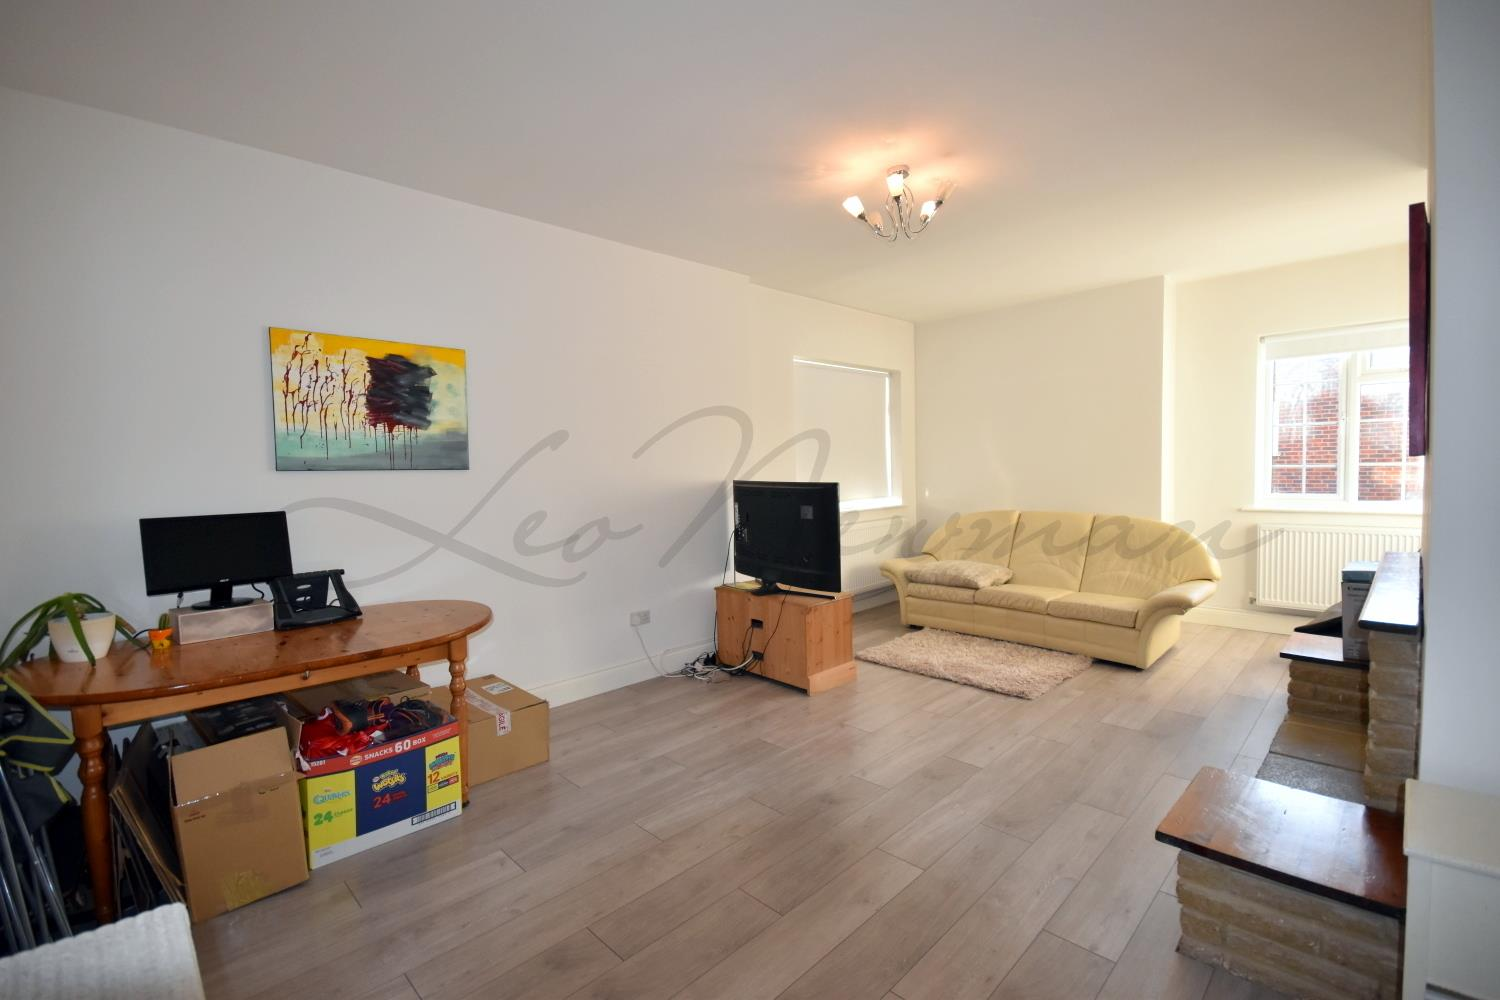 Rylton House, Walton-on-Thames, KT12